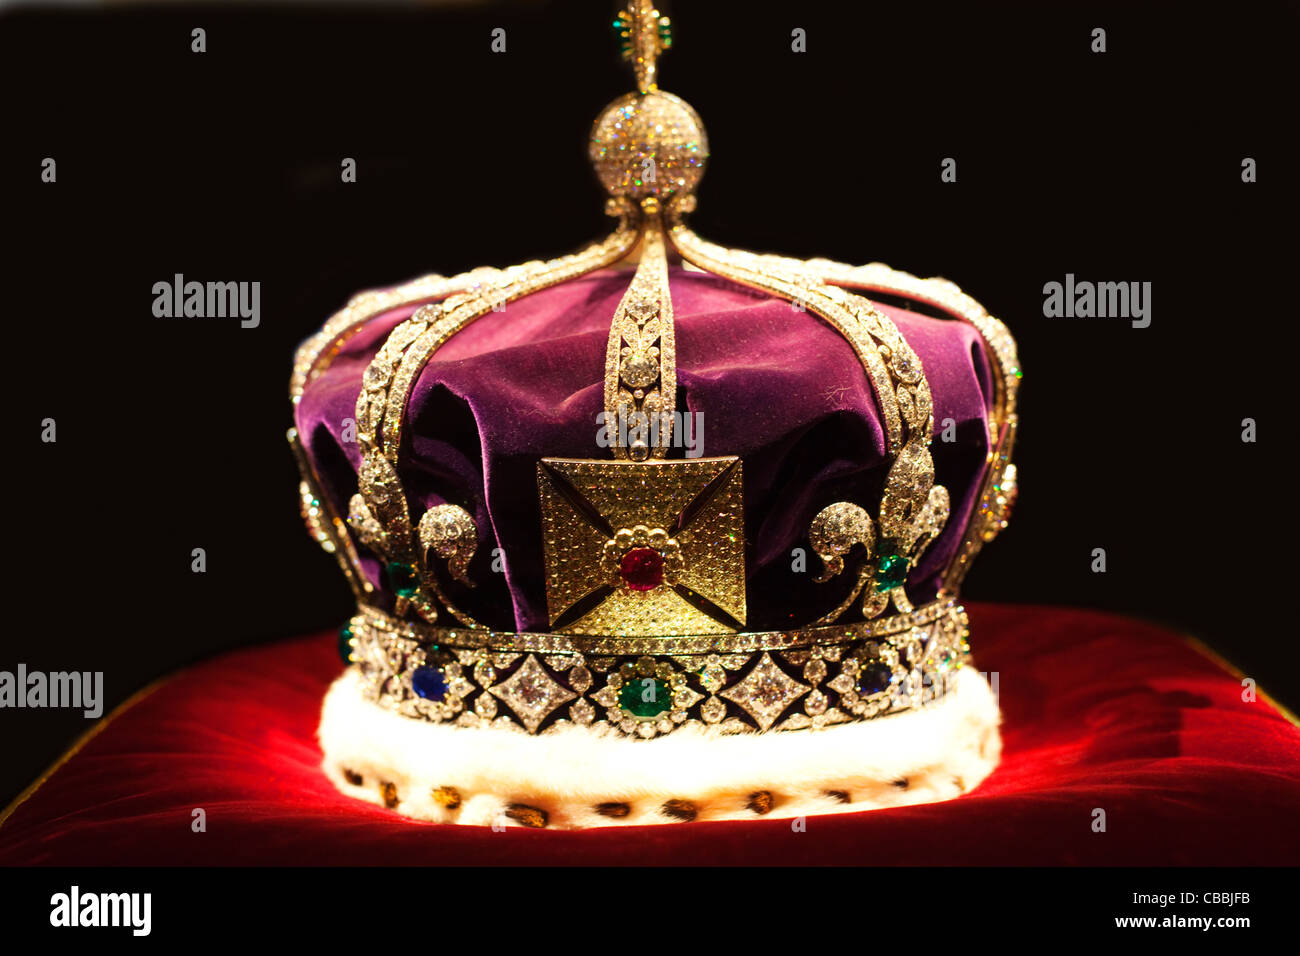 Tower Of London Crown Jewels Stock Photos & Tower Of London Crown ...